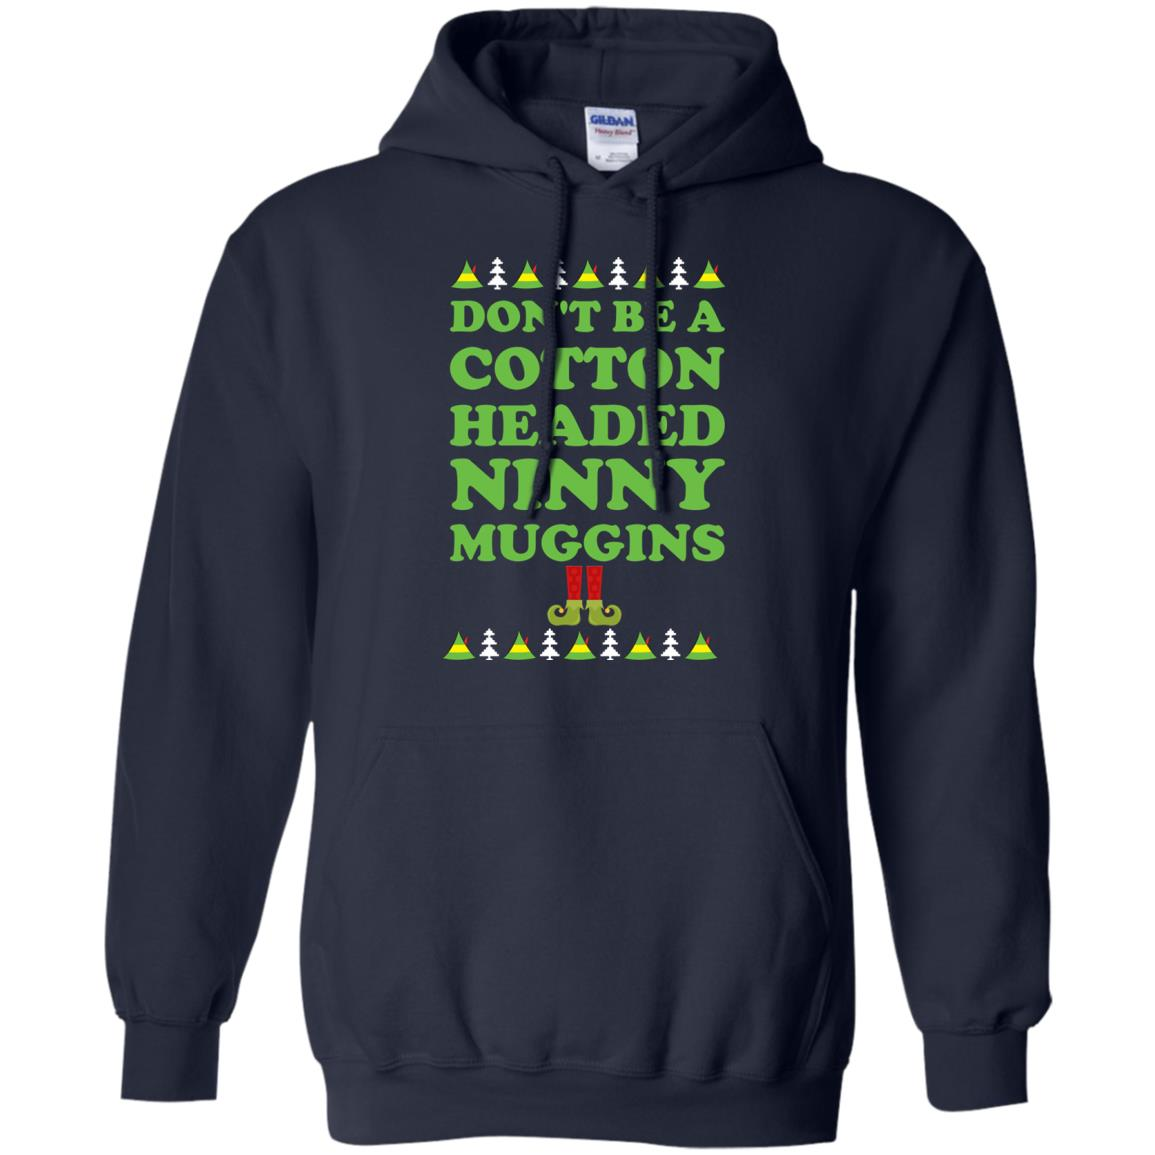 image 2797 - Elf Don't Be a Cotton Headed Ninny Muggins Christmas Sweater, Hoodie